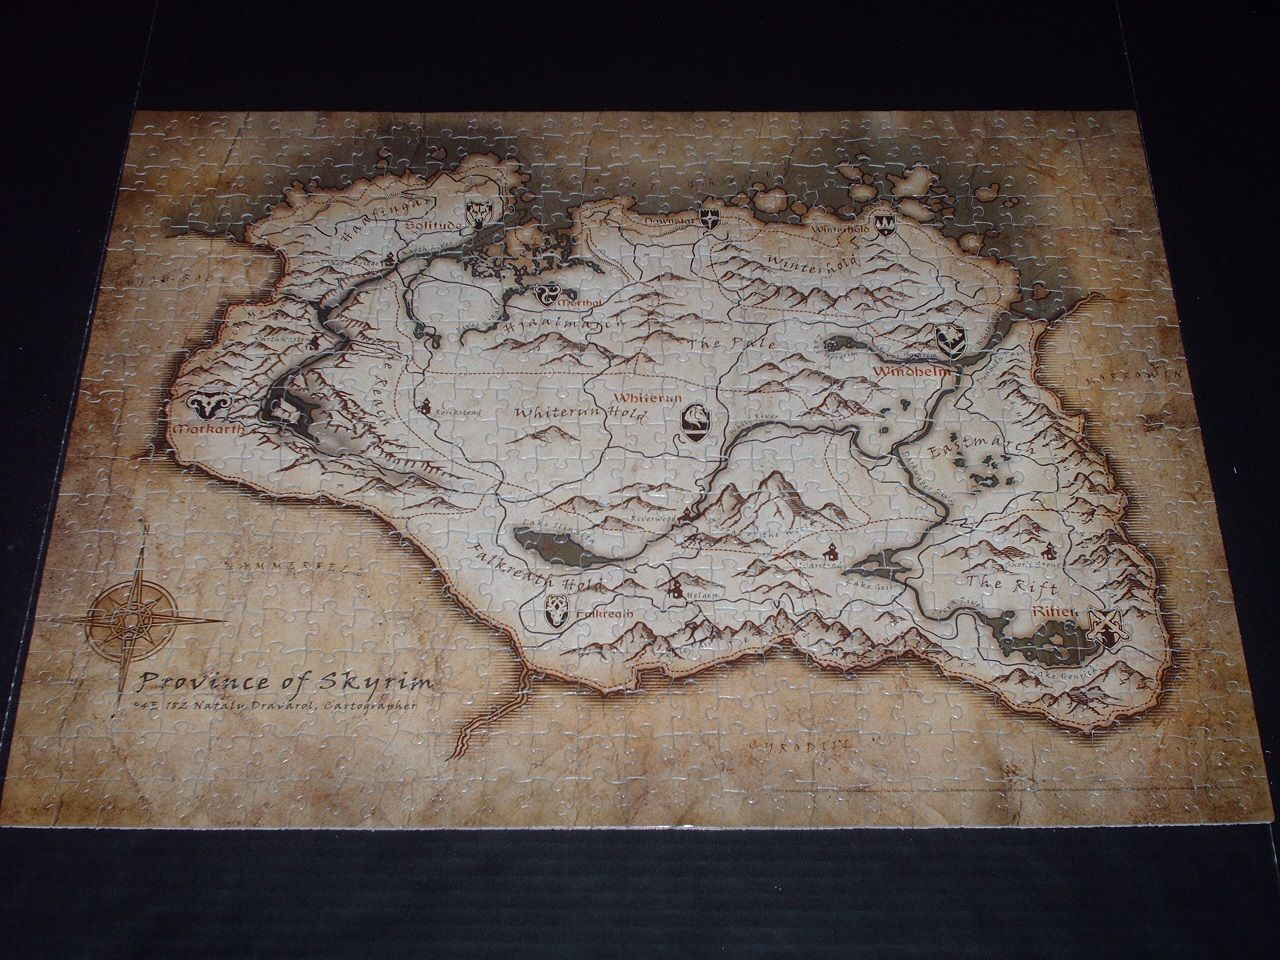 Jigsaw review the elder scrolls v skyrim map puzzle toys jigsaw review the elder scrolls v skyrim map puzzle gumiabroncs Image collections